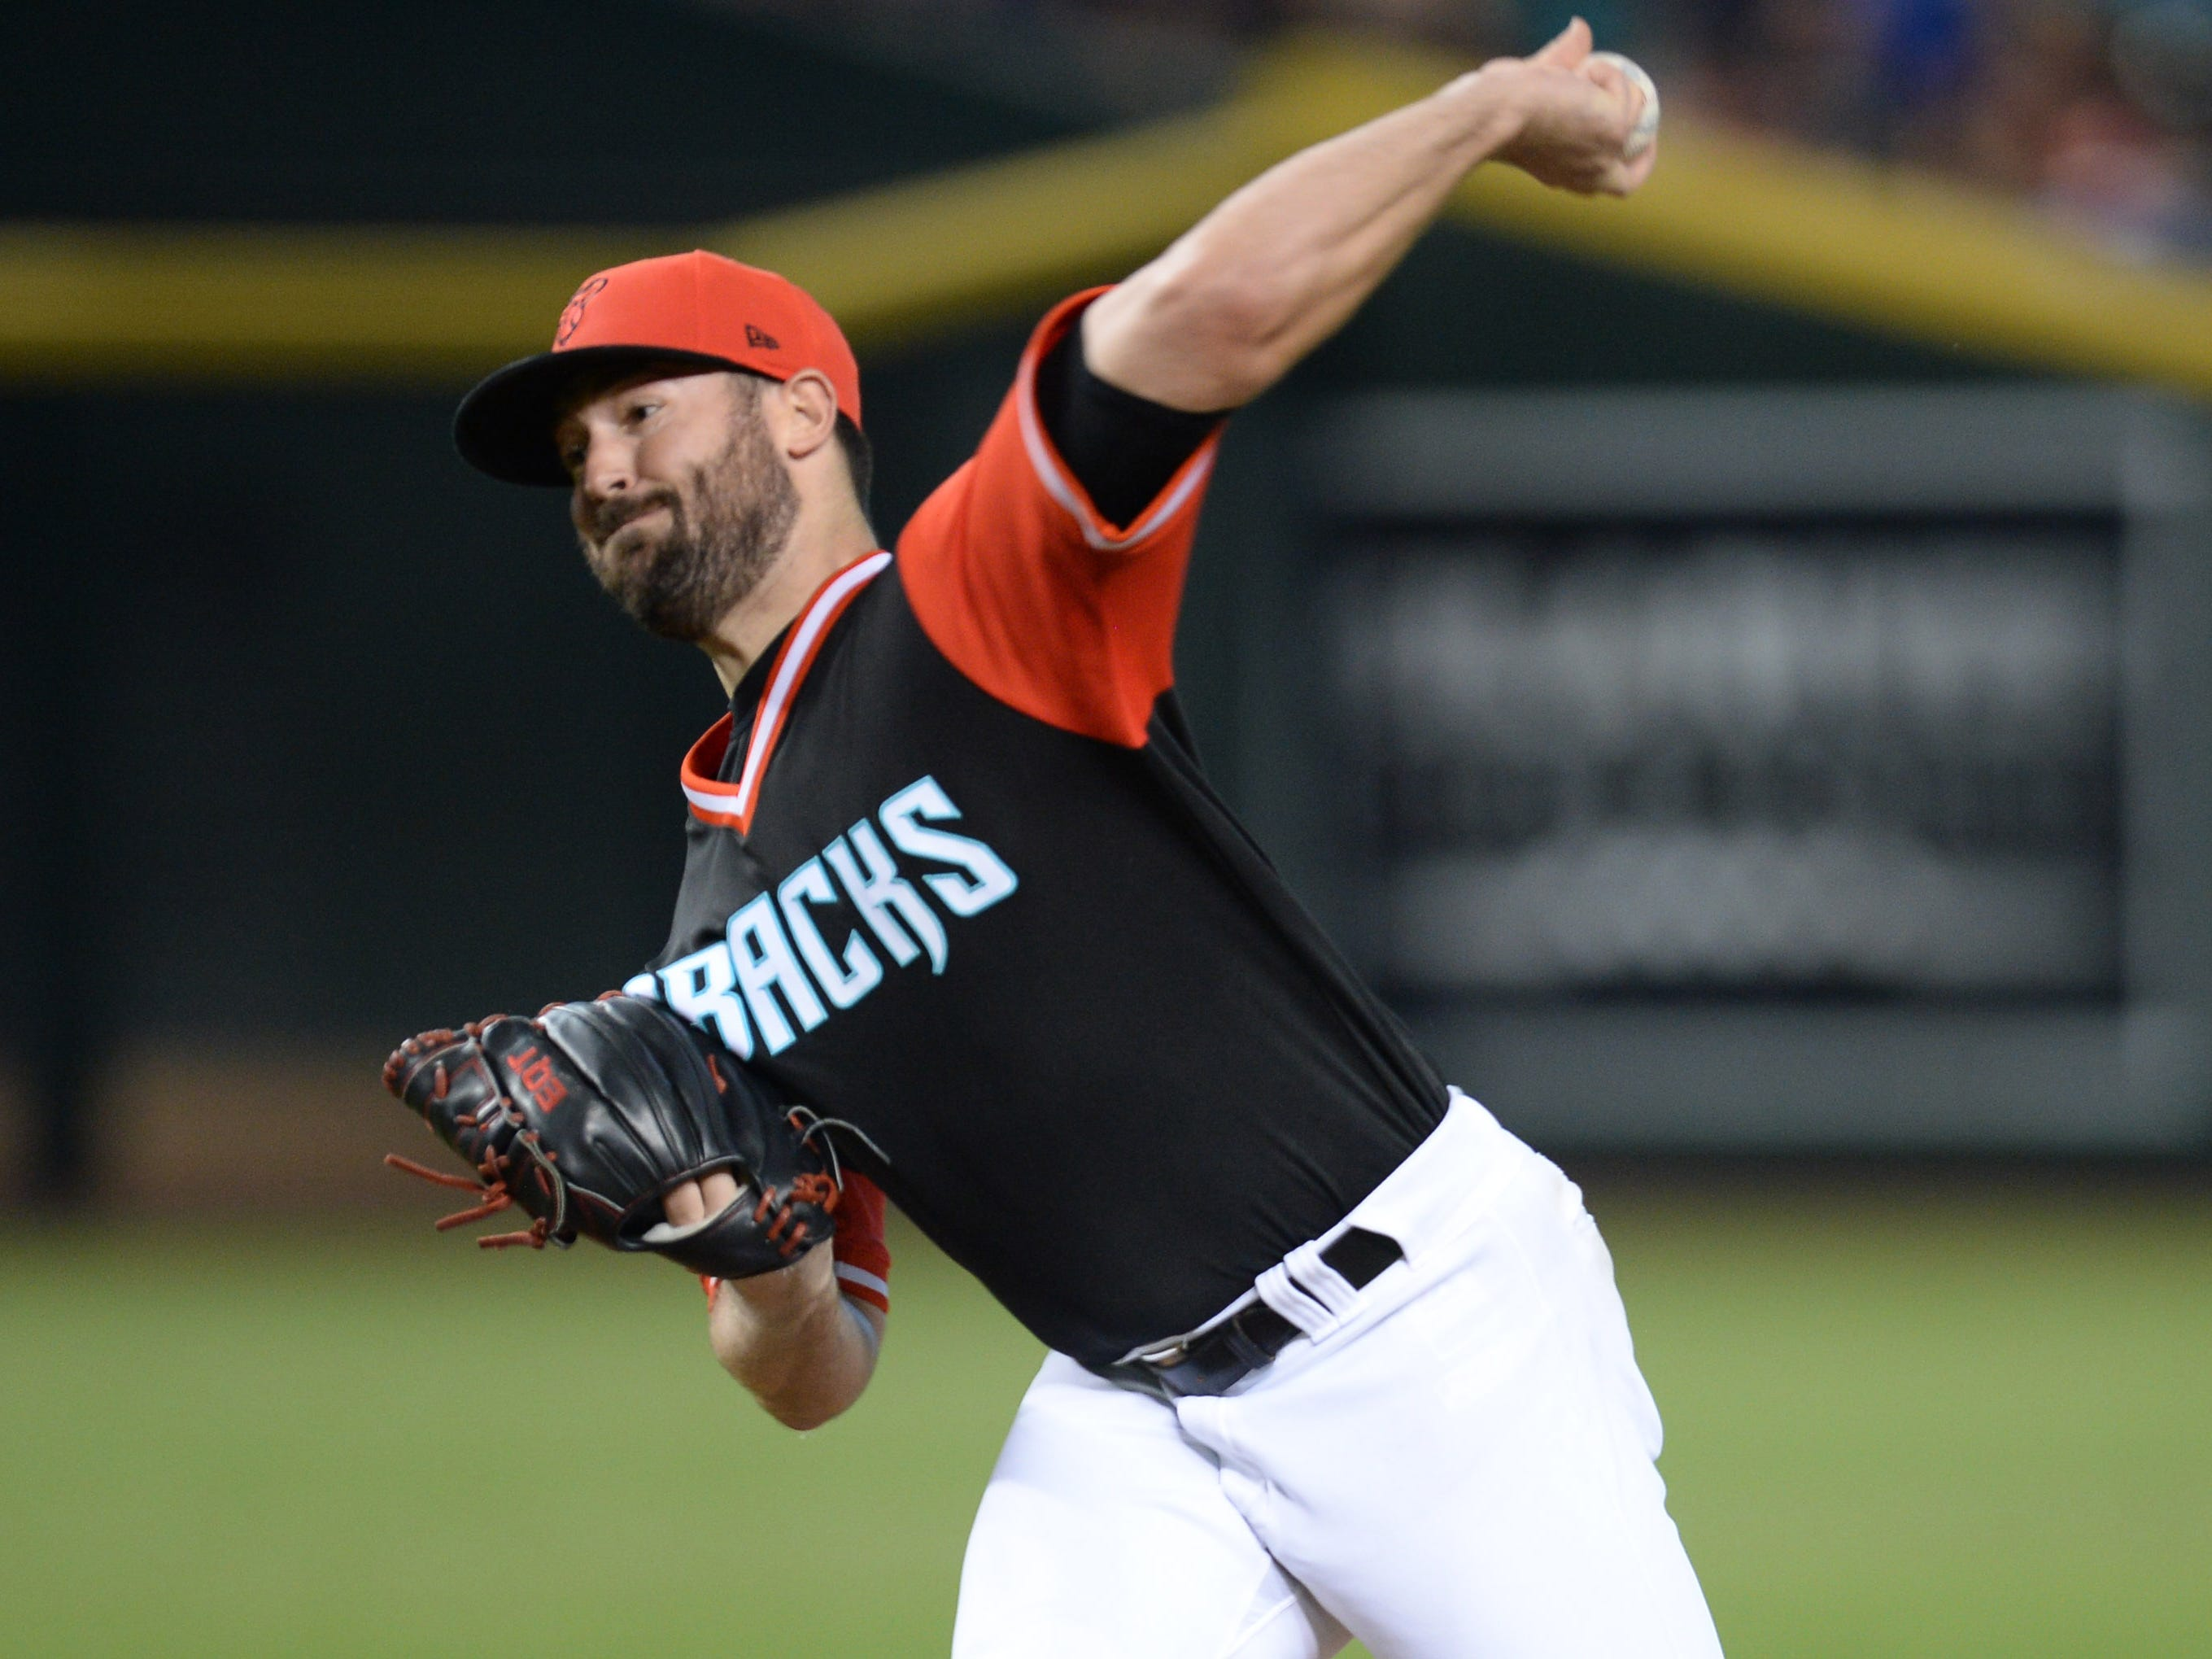 Aug 25, 2018; Phoenix, AZ, USA; Arizona Diamondbacks starting pitcher Robbie Ray (38) pitches against the Seattle Mariners during the first inning at Chase Field. Mandatory Credit: Joe Camporeale-USA TODAY Sports